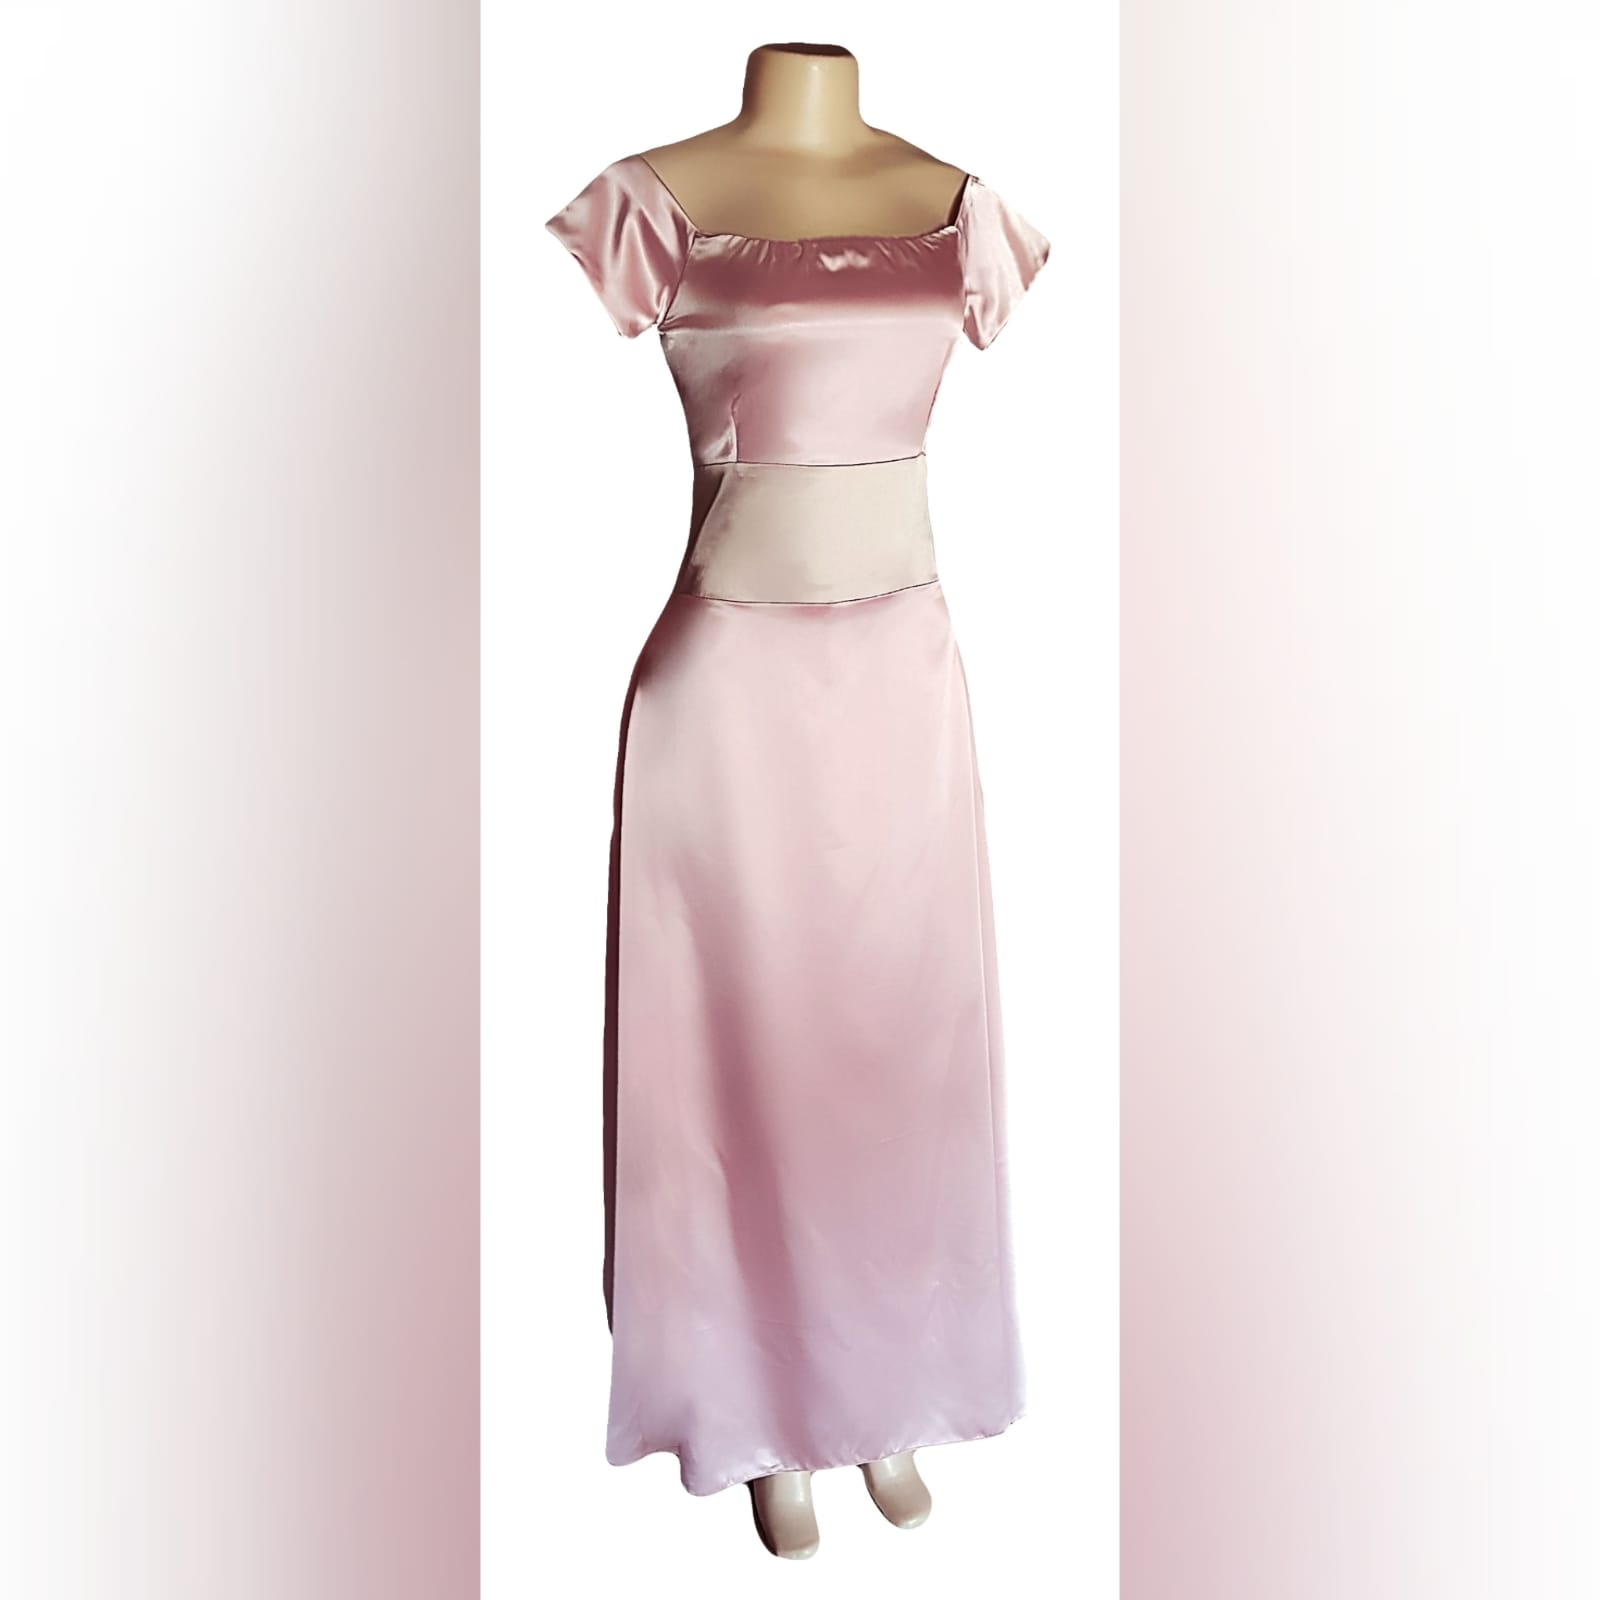 An elegant simple and sophisticated pink and champagne formal dress 8 an elegant, simple and sophisticated pink and champagne formal dress, created for a wedding ceremony. This design was created with a light wear satin, off-shoulder neckline and short sleeves, and a wide champagne belt. Created for a client in south africa.